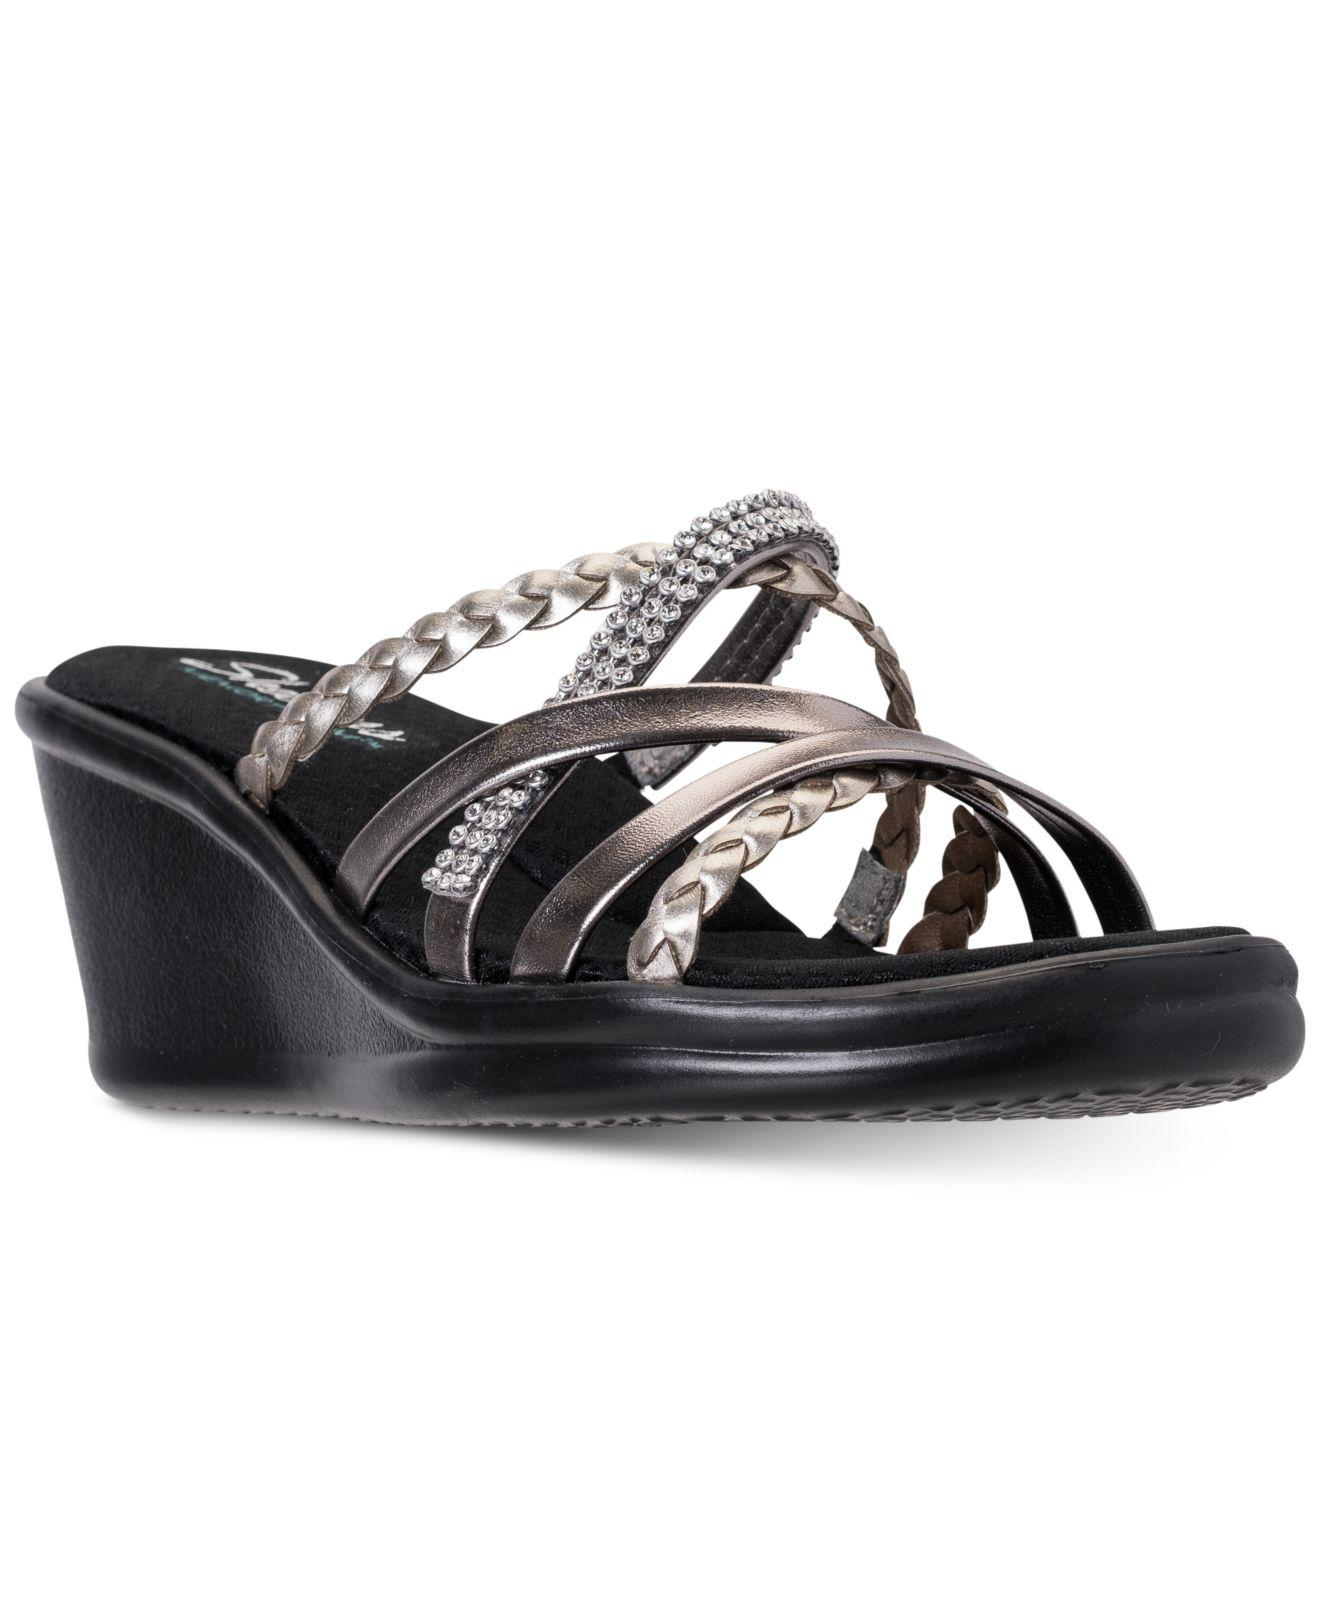 8512ffcc169 Lyst - Skechers Rumblers - Wild Child Sandals From Finish Line in Black